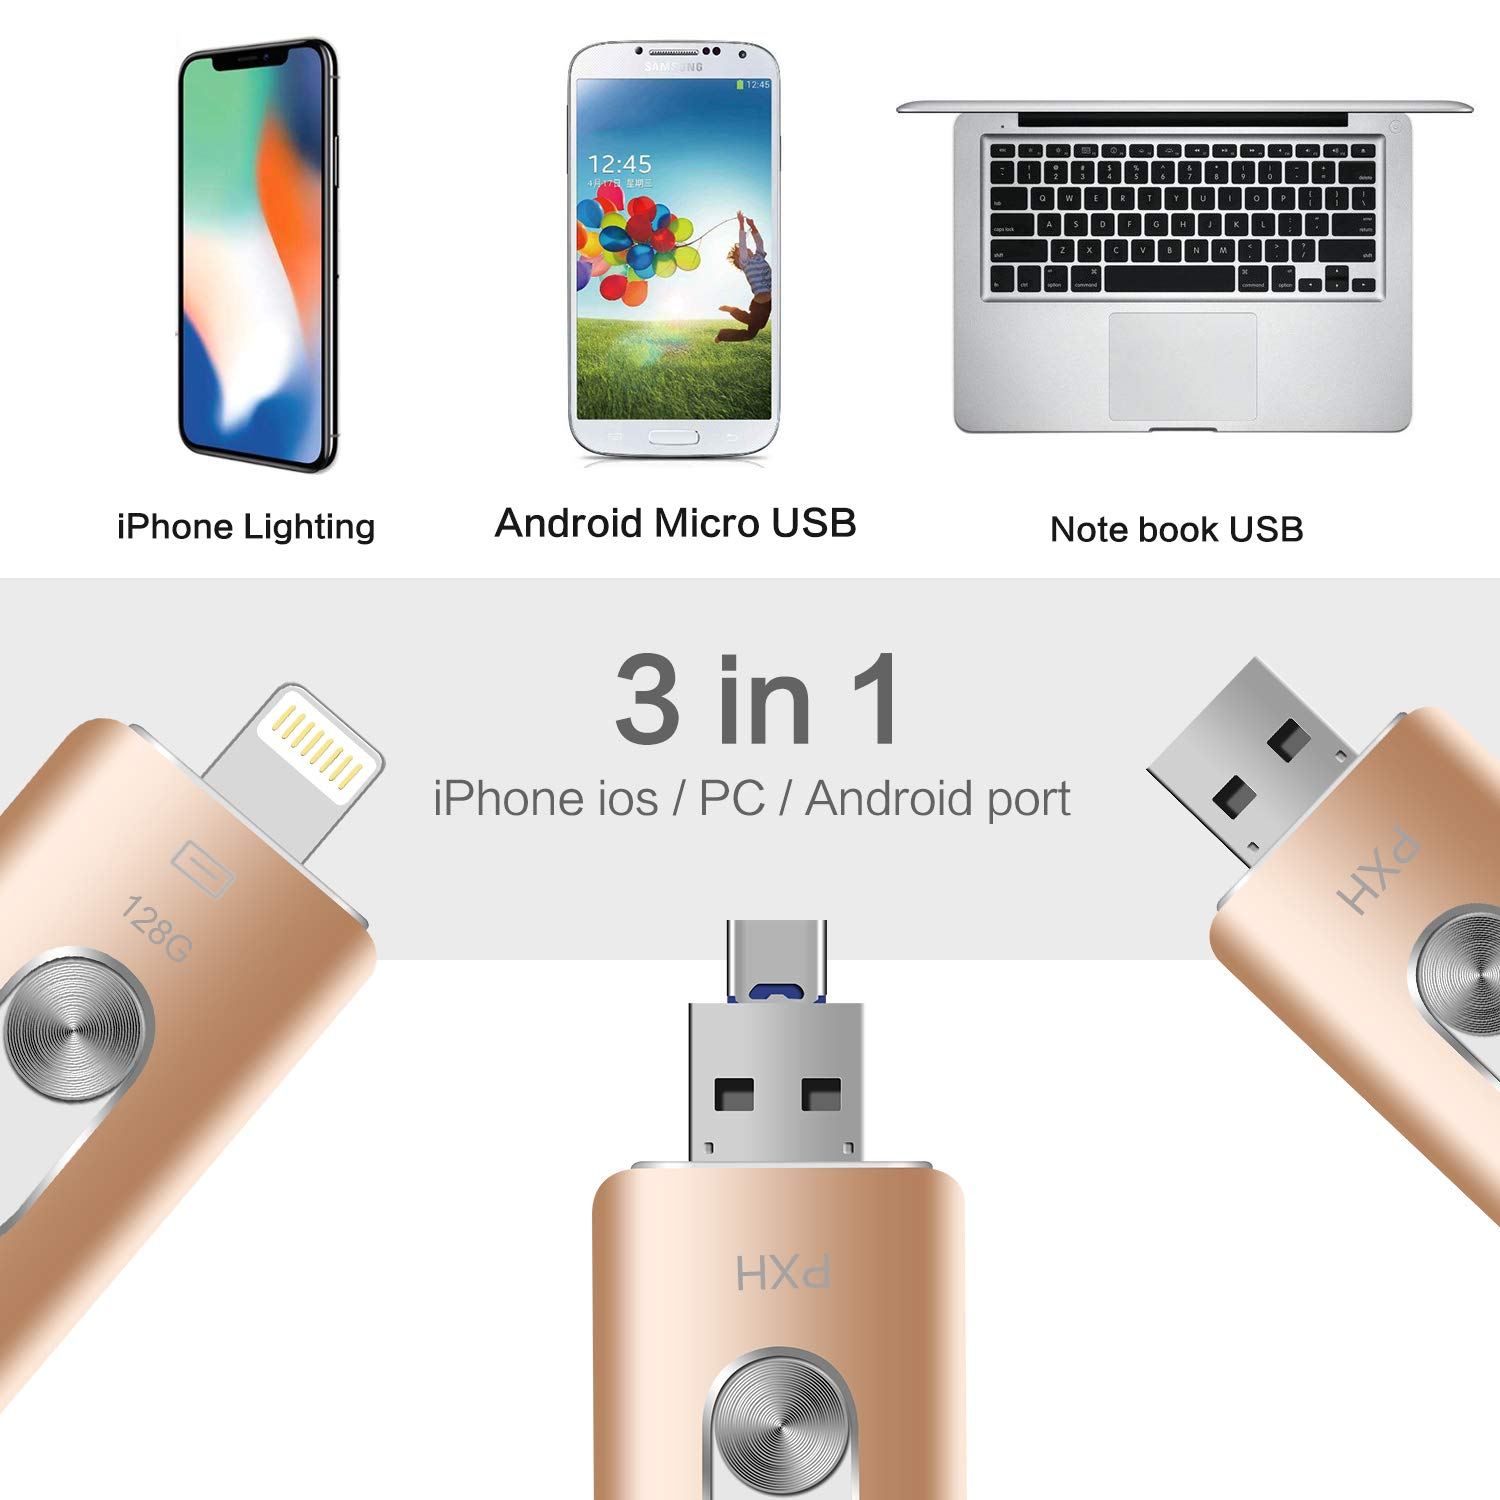 Flash Drives for iPhone and iPad , PXH iOS Flash Drive iPhone Memory Stick External Storage Photo Stick for iPhone,iPad,MacBook,Android,pc and More Devices with USB Port (Red 128GB) … (Red) by PXH (Image #2)